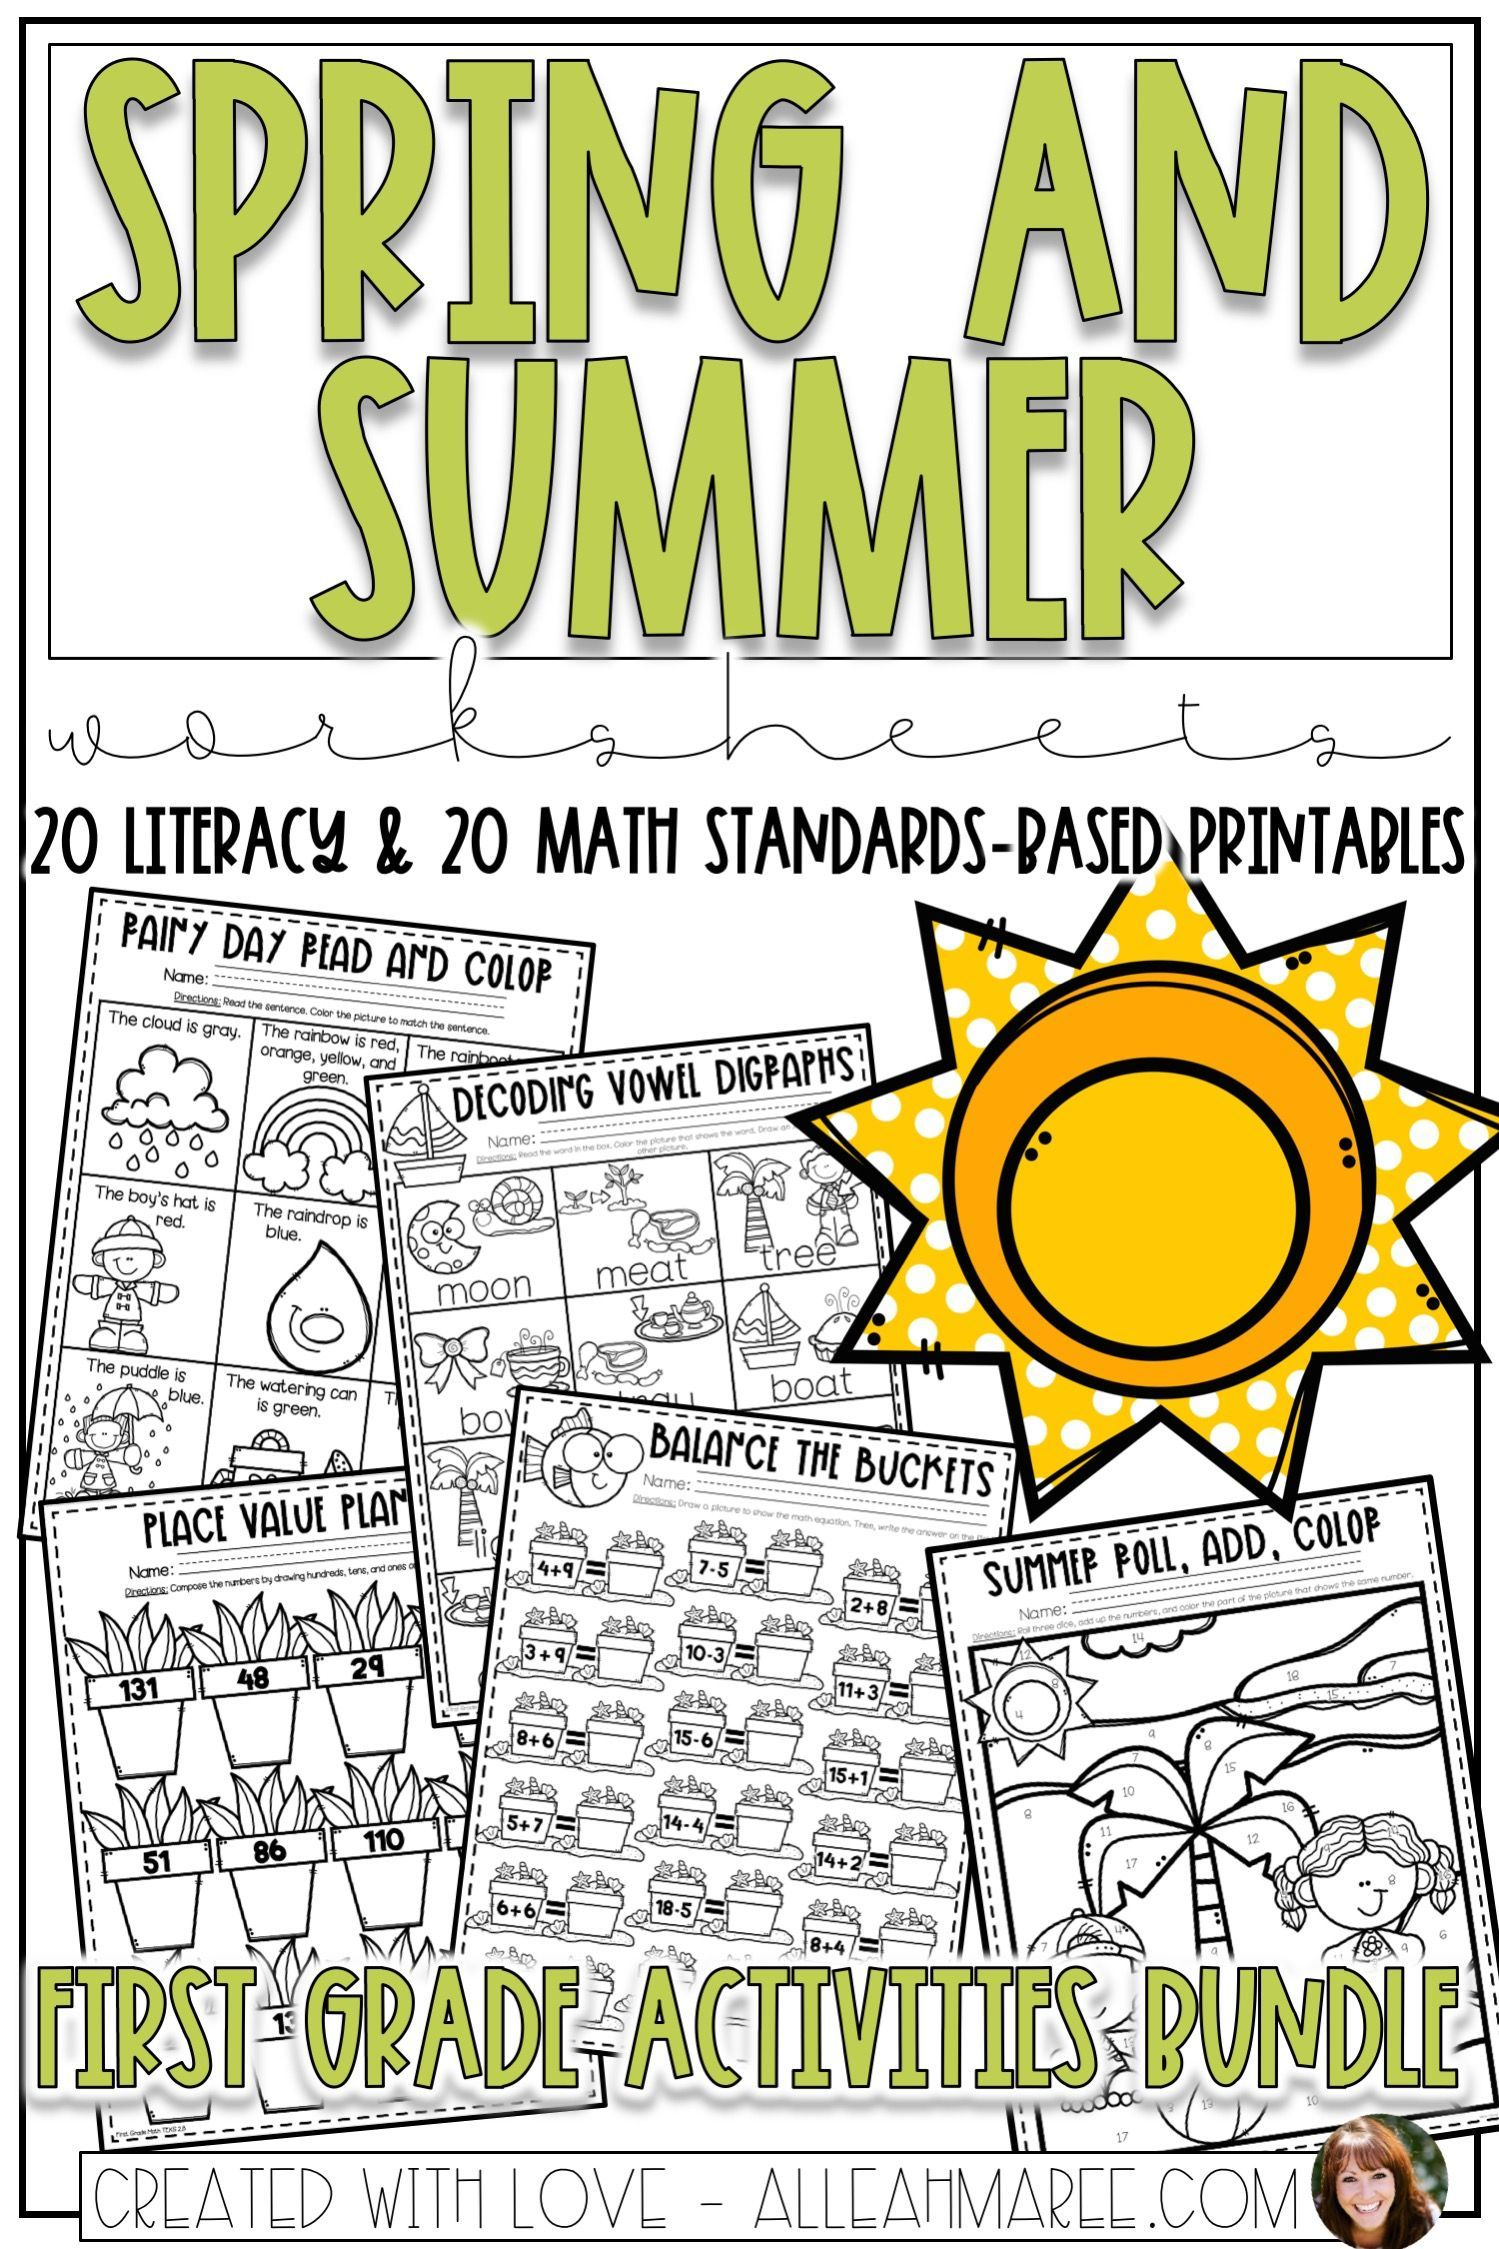 Free Summer Worksheets For First Grade   Printable Worksheets and  Activities for Teachers [ 2249 x 1499 Pixel ]